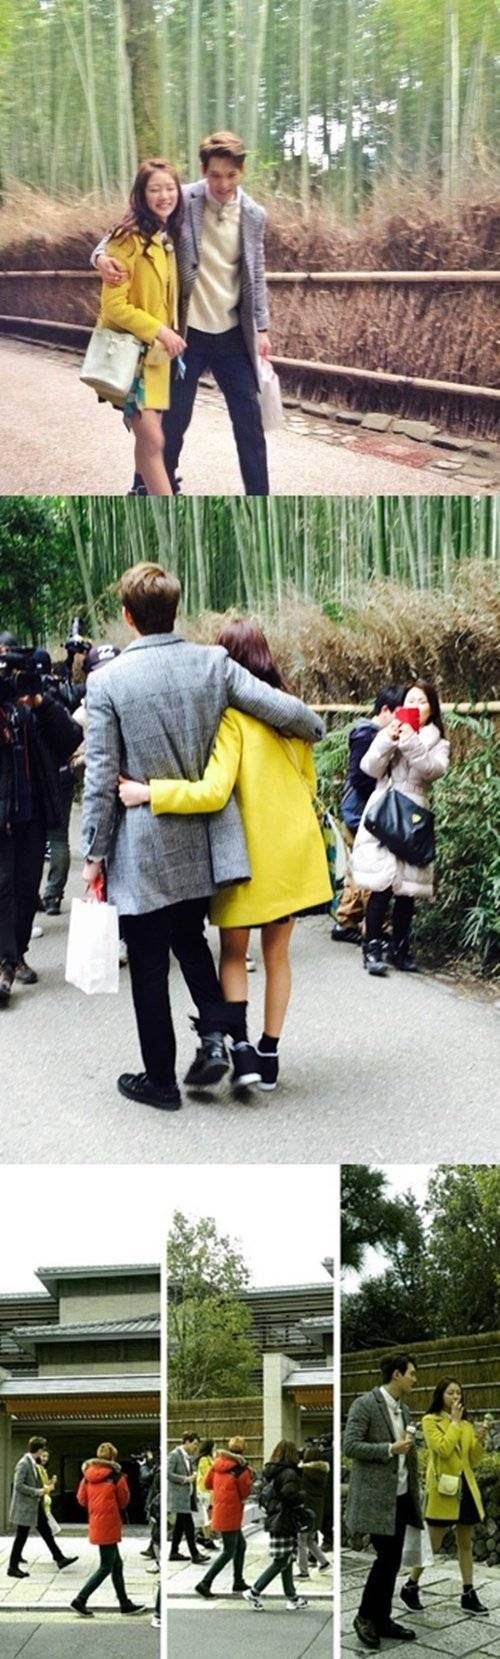 CNBLUE's Jonghyun and actress Gong Seung Yeon spotted on their Japan date for 'We Got Married' | http://www.allkpop.com/article/2015/03/cnblues-jonghyun-and-actress-gong-seung-yeon-spotted-on-their-japan-date-for-we-got-married